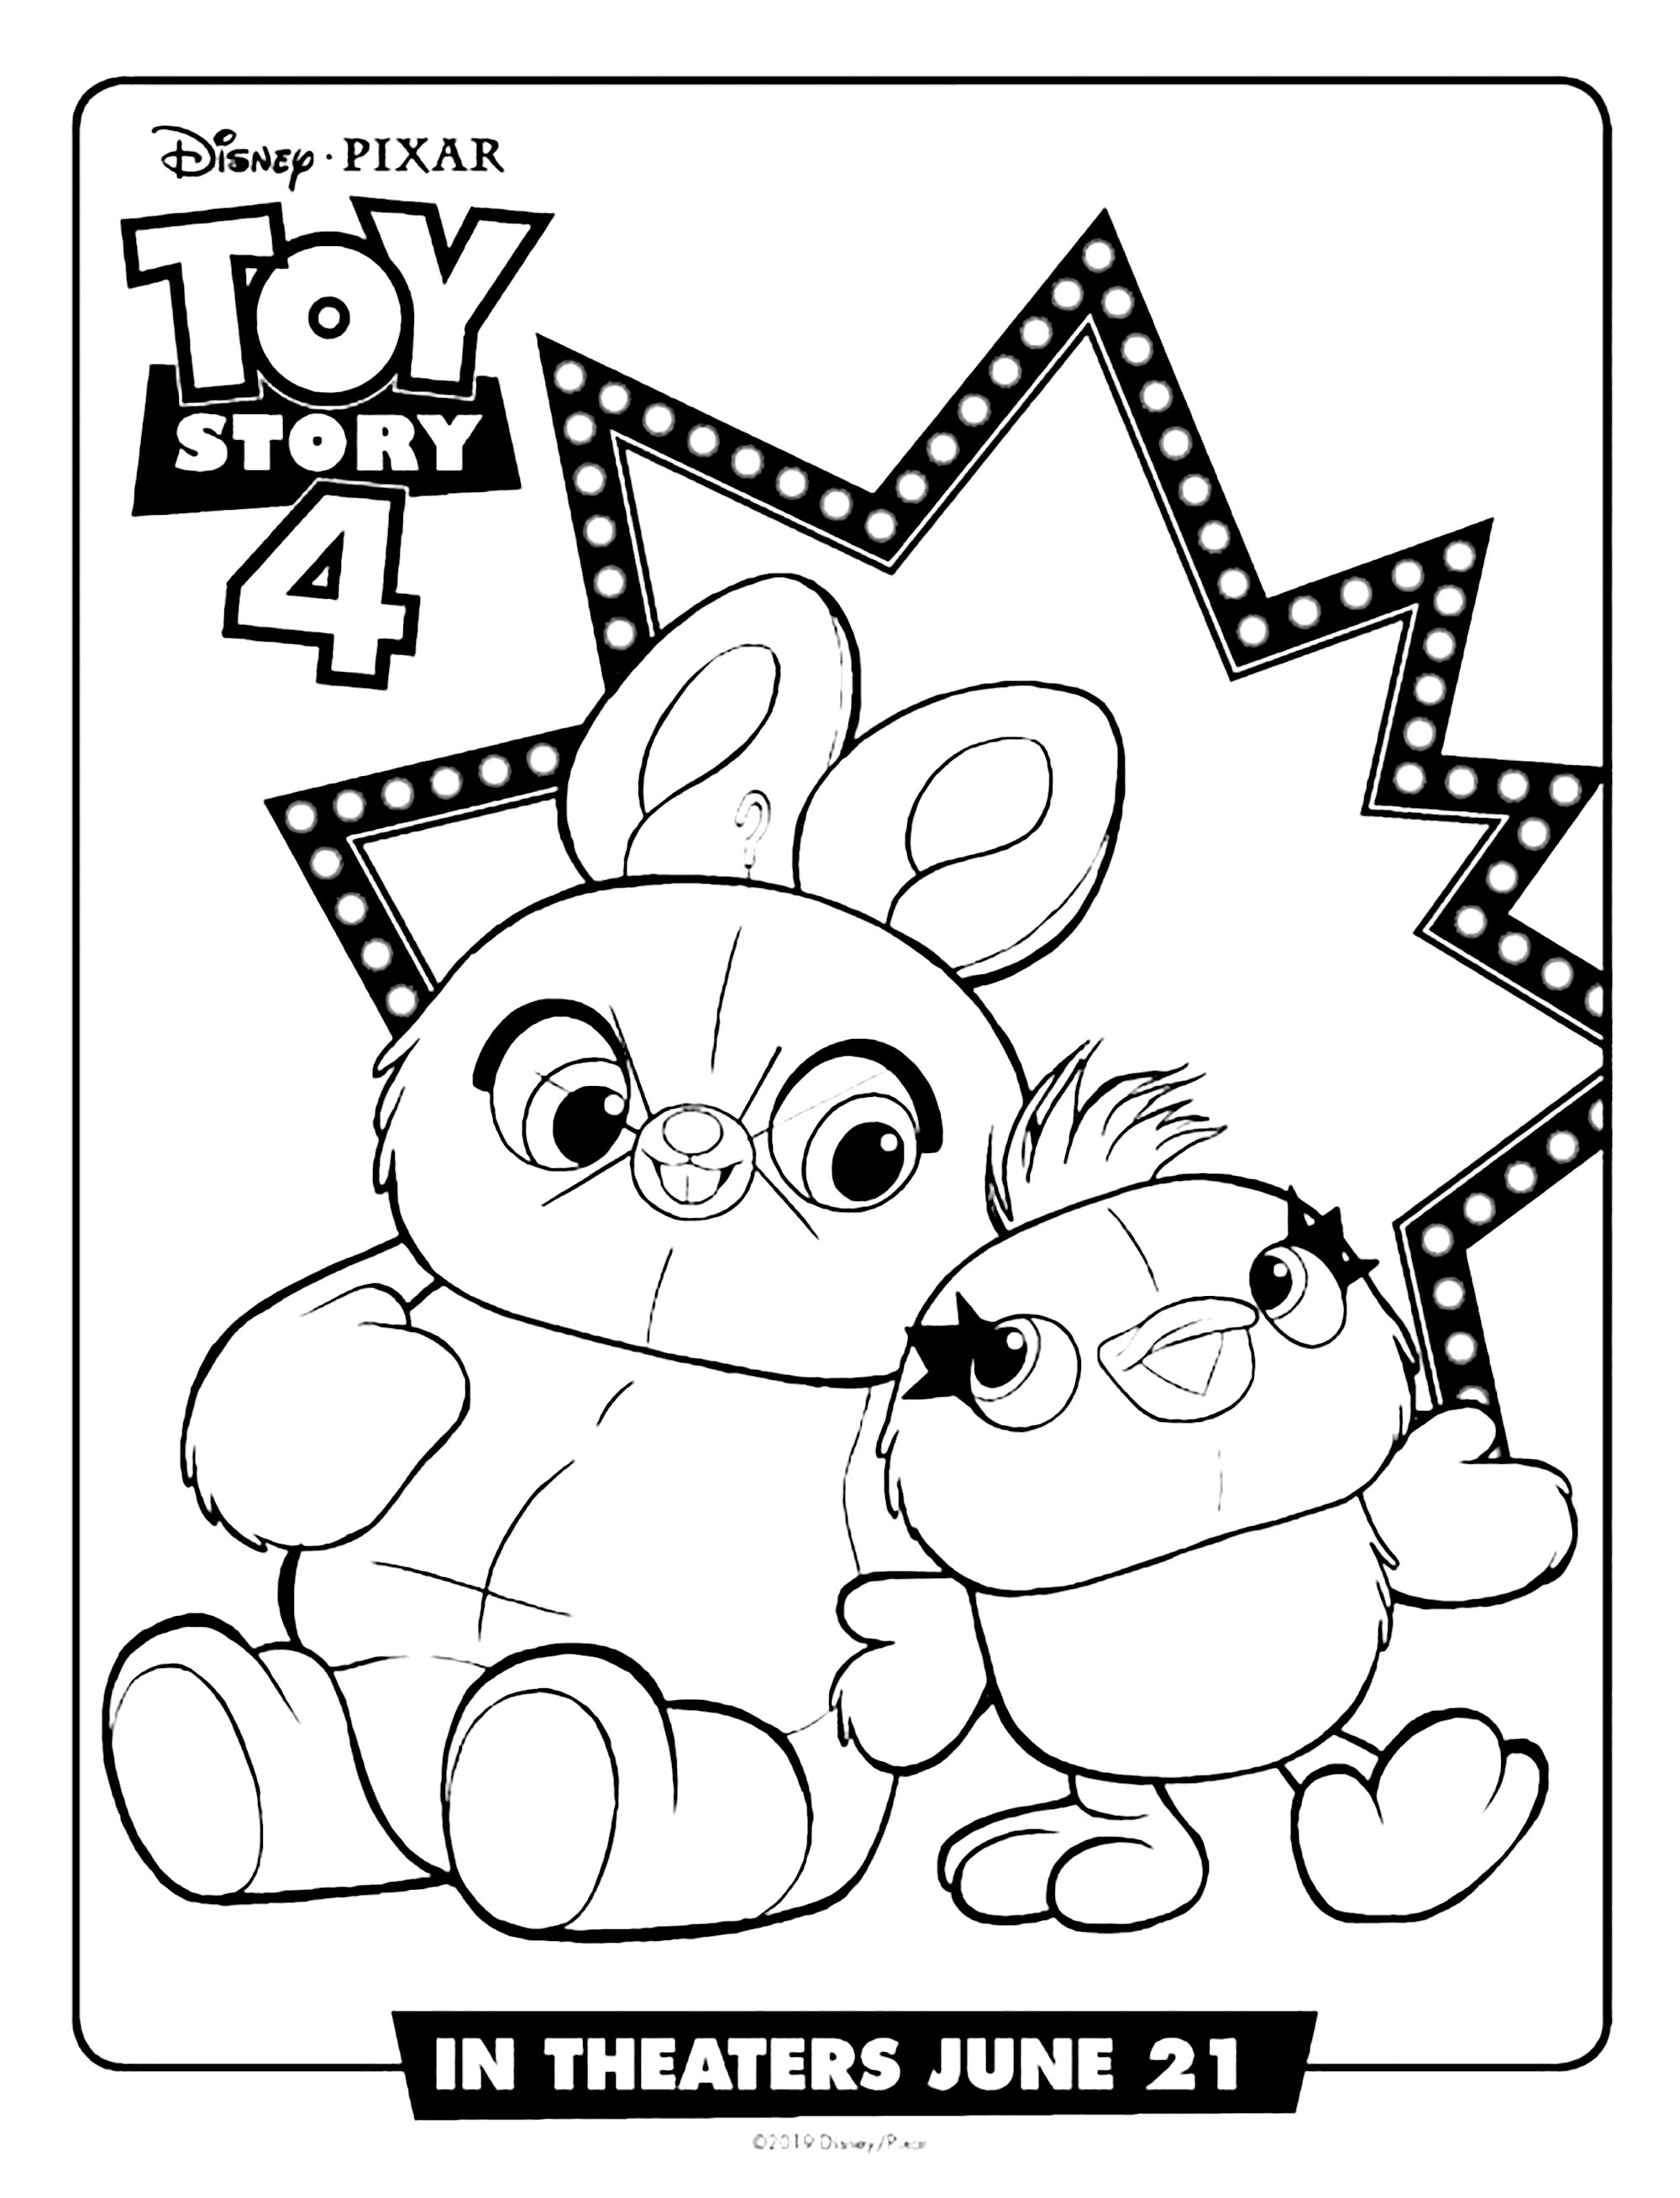 Ducky And Bunny Cute Toy Story 4 Coloring Pages Toy Story 4 Kids Coloring Pages